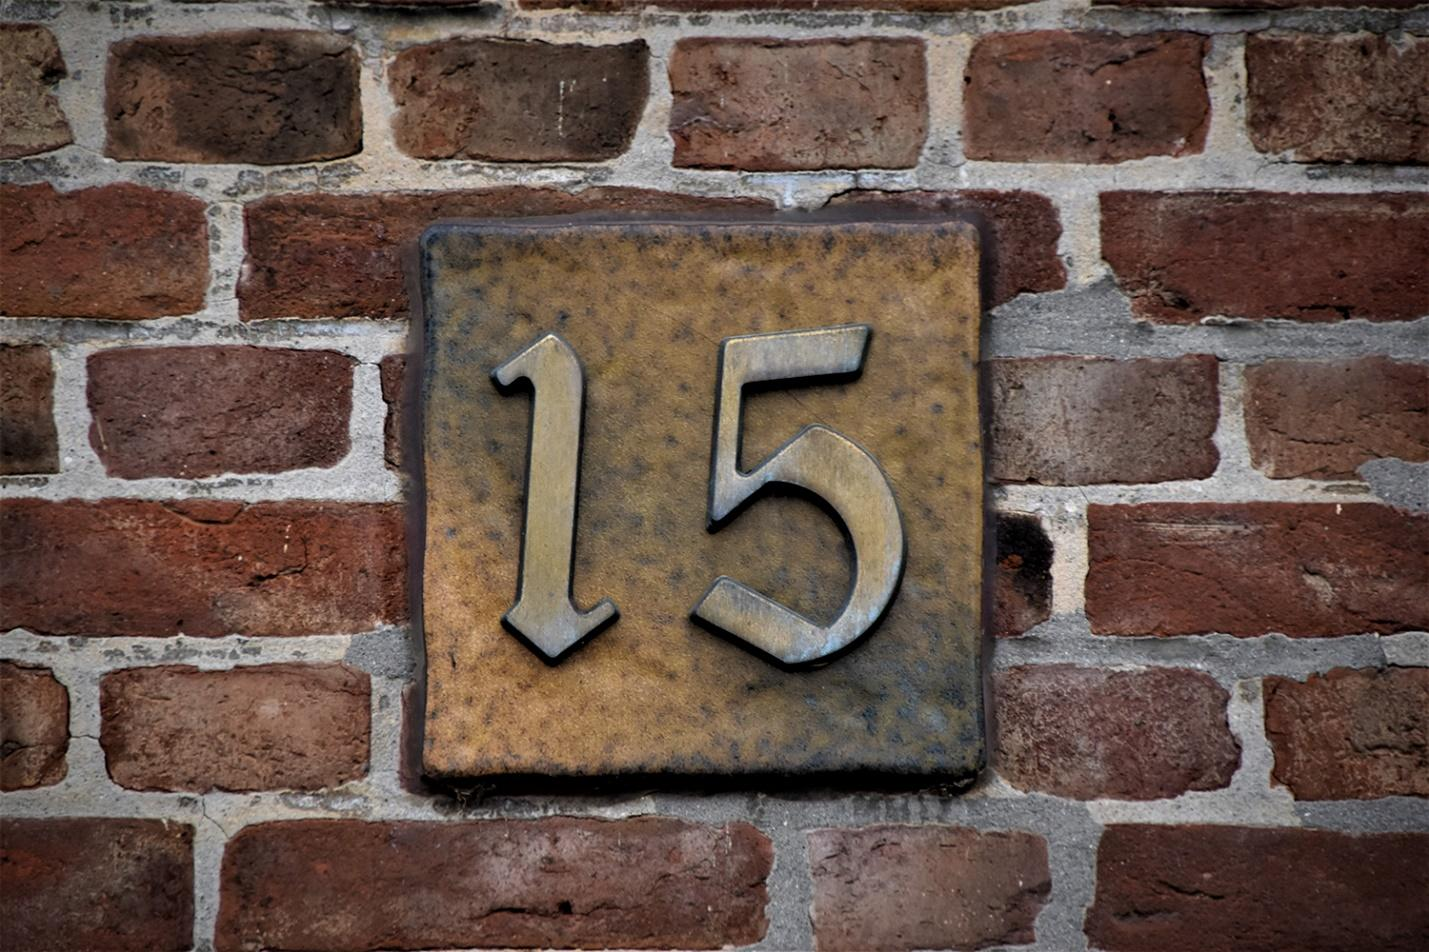 Brass house number.